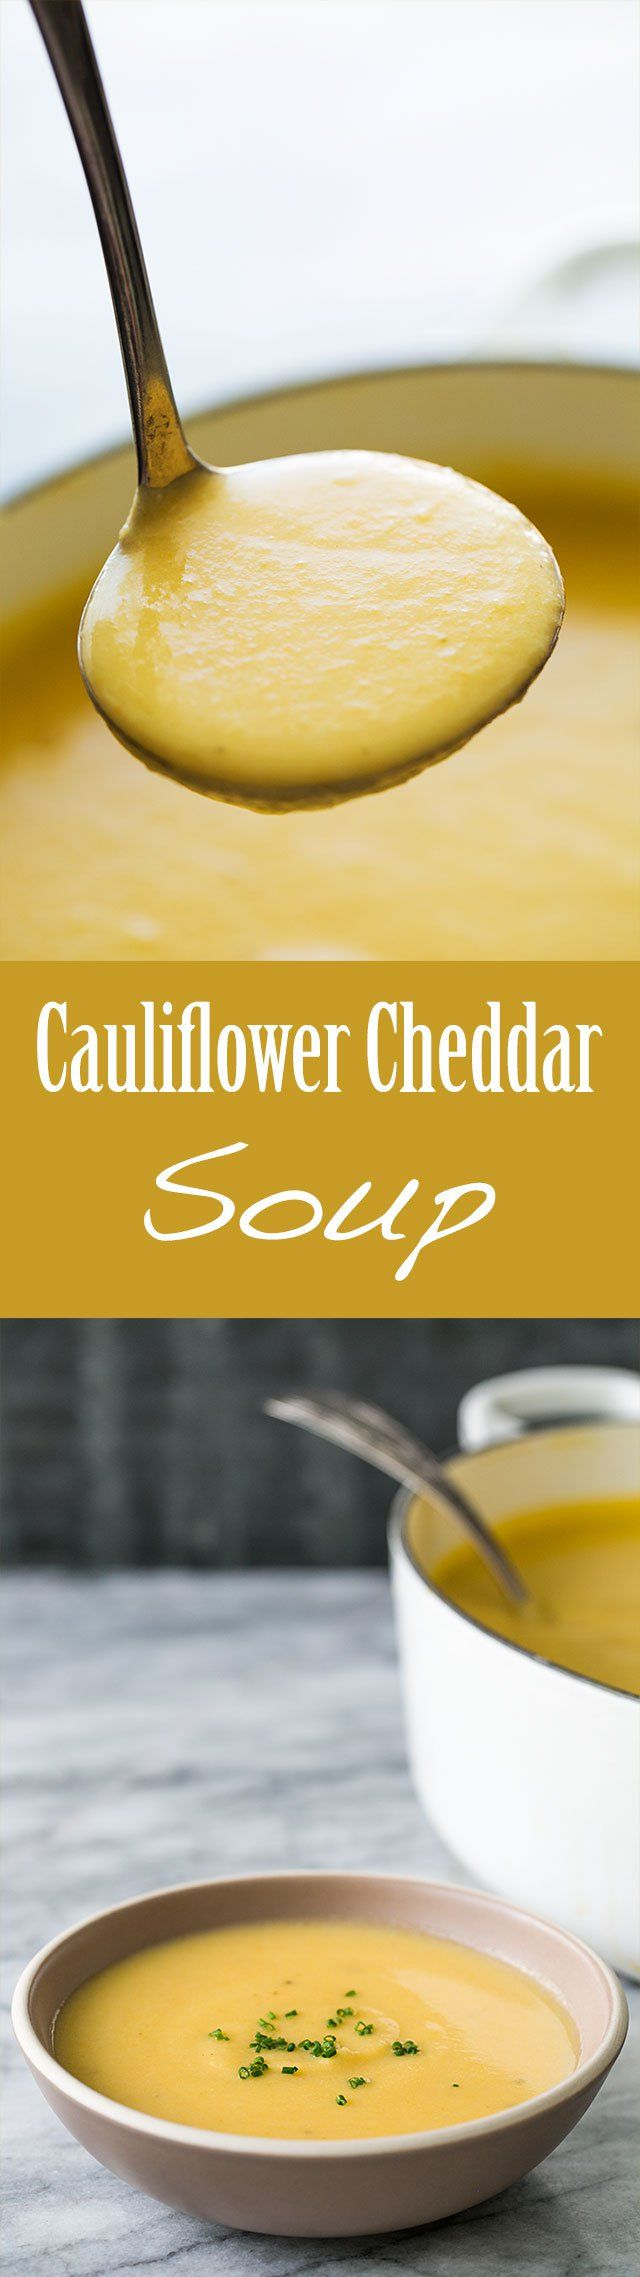 Best soup ever on a chilly day! Delicious, smooth, creamy cauliflower soup with…